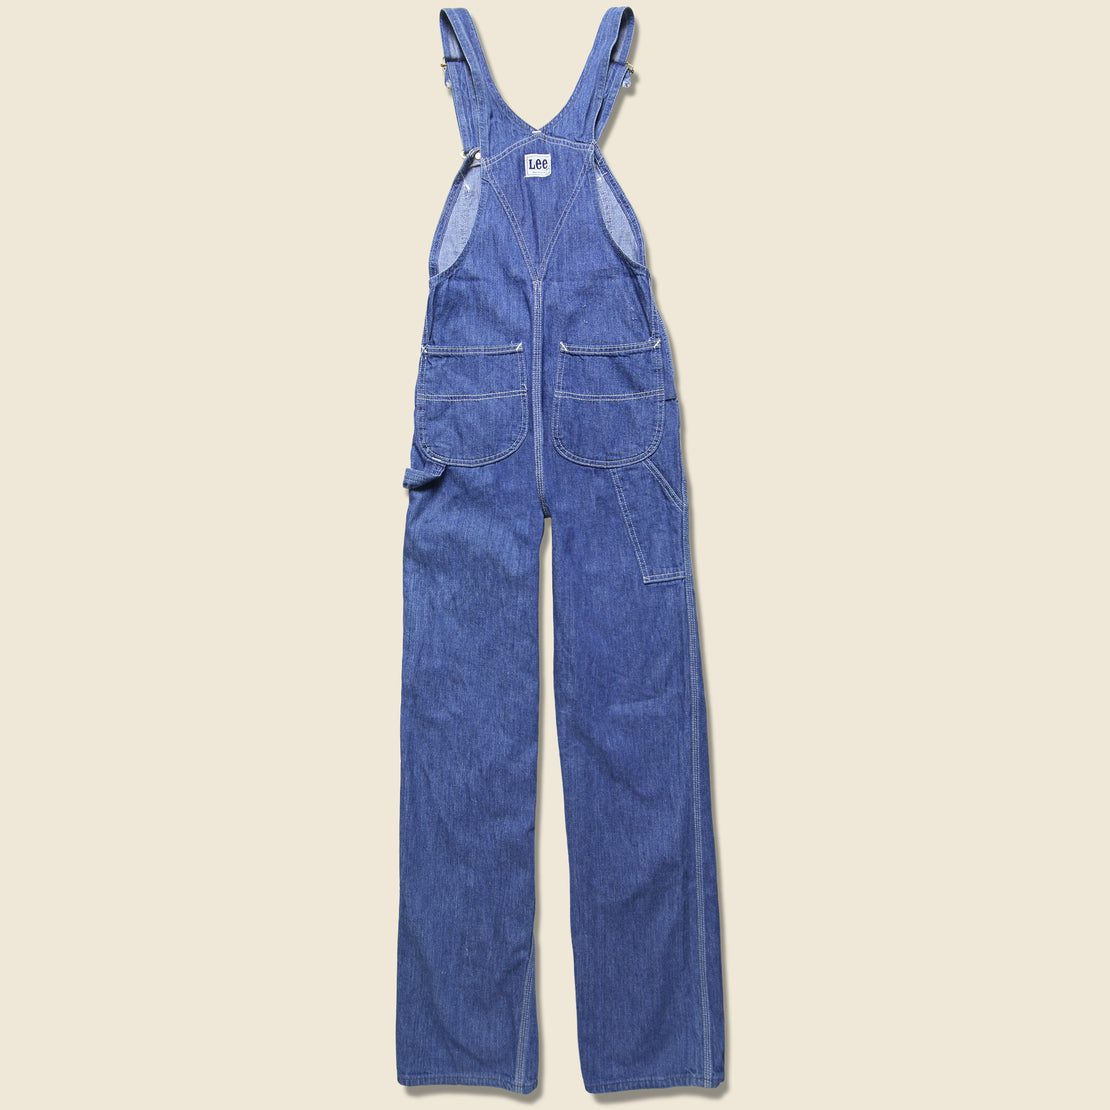 Lee Denim Overalls - Indigo